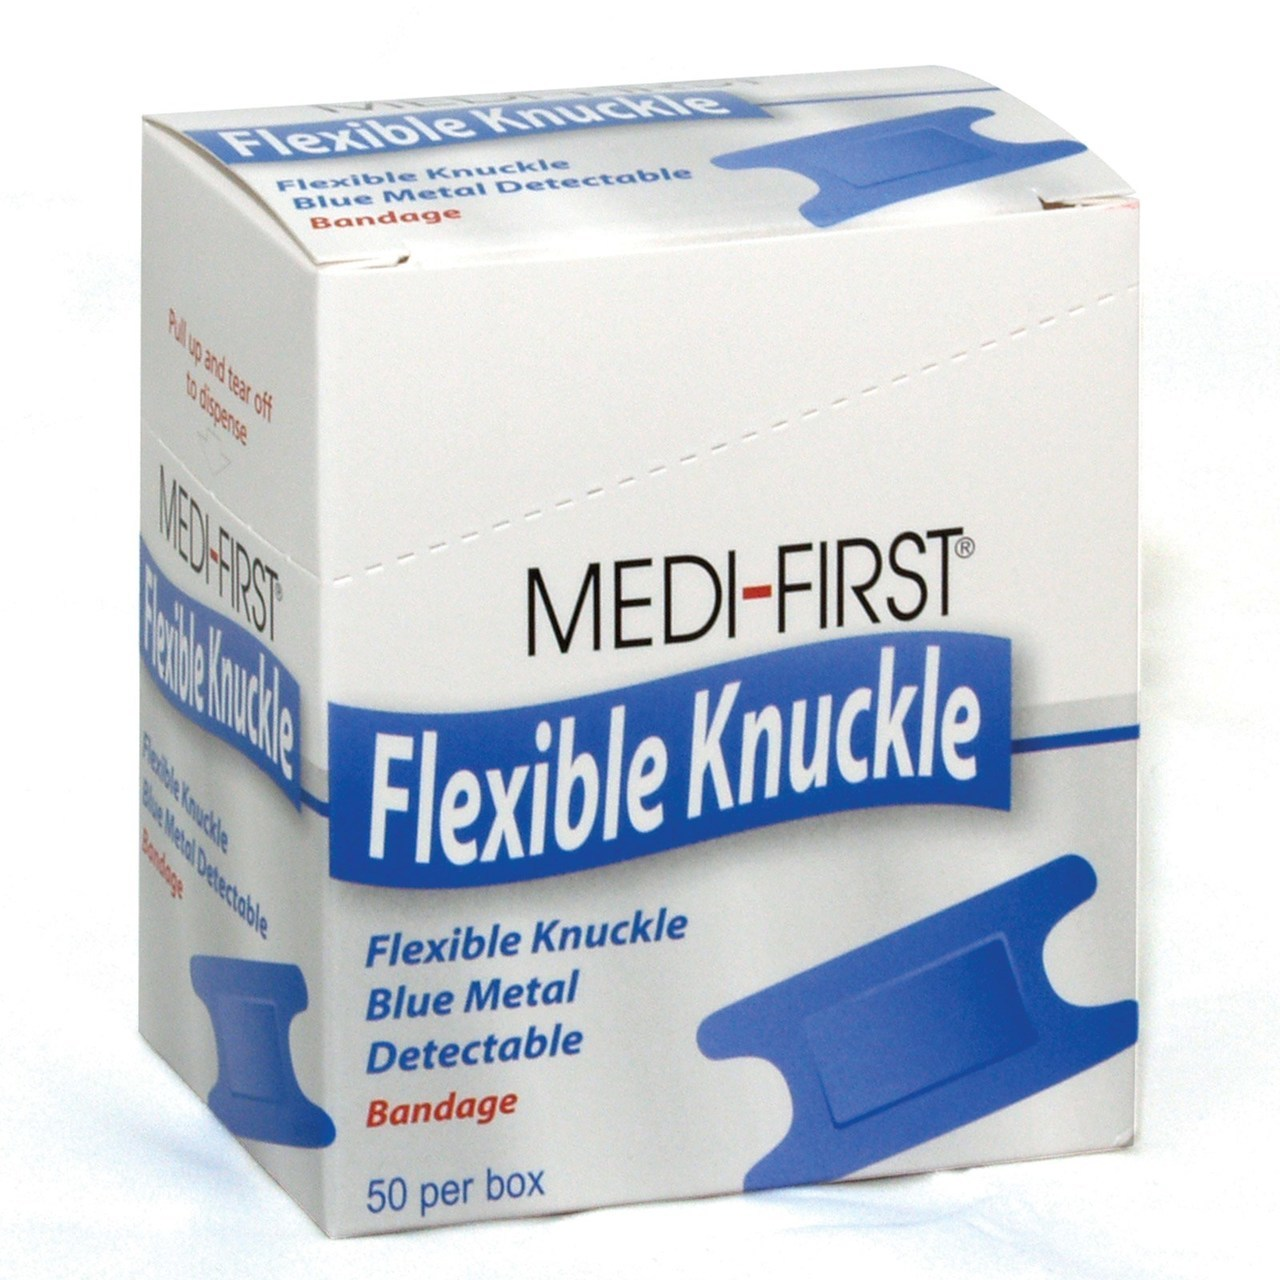 Medique Medi-First Blue Metal Detectable Bandages, Woven Knuckle - Box of 50